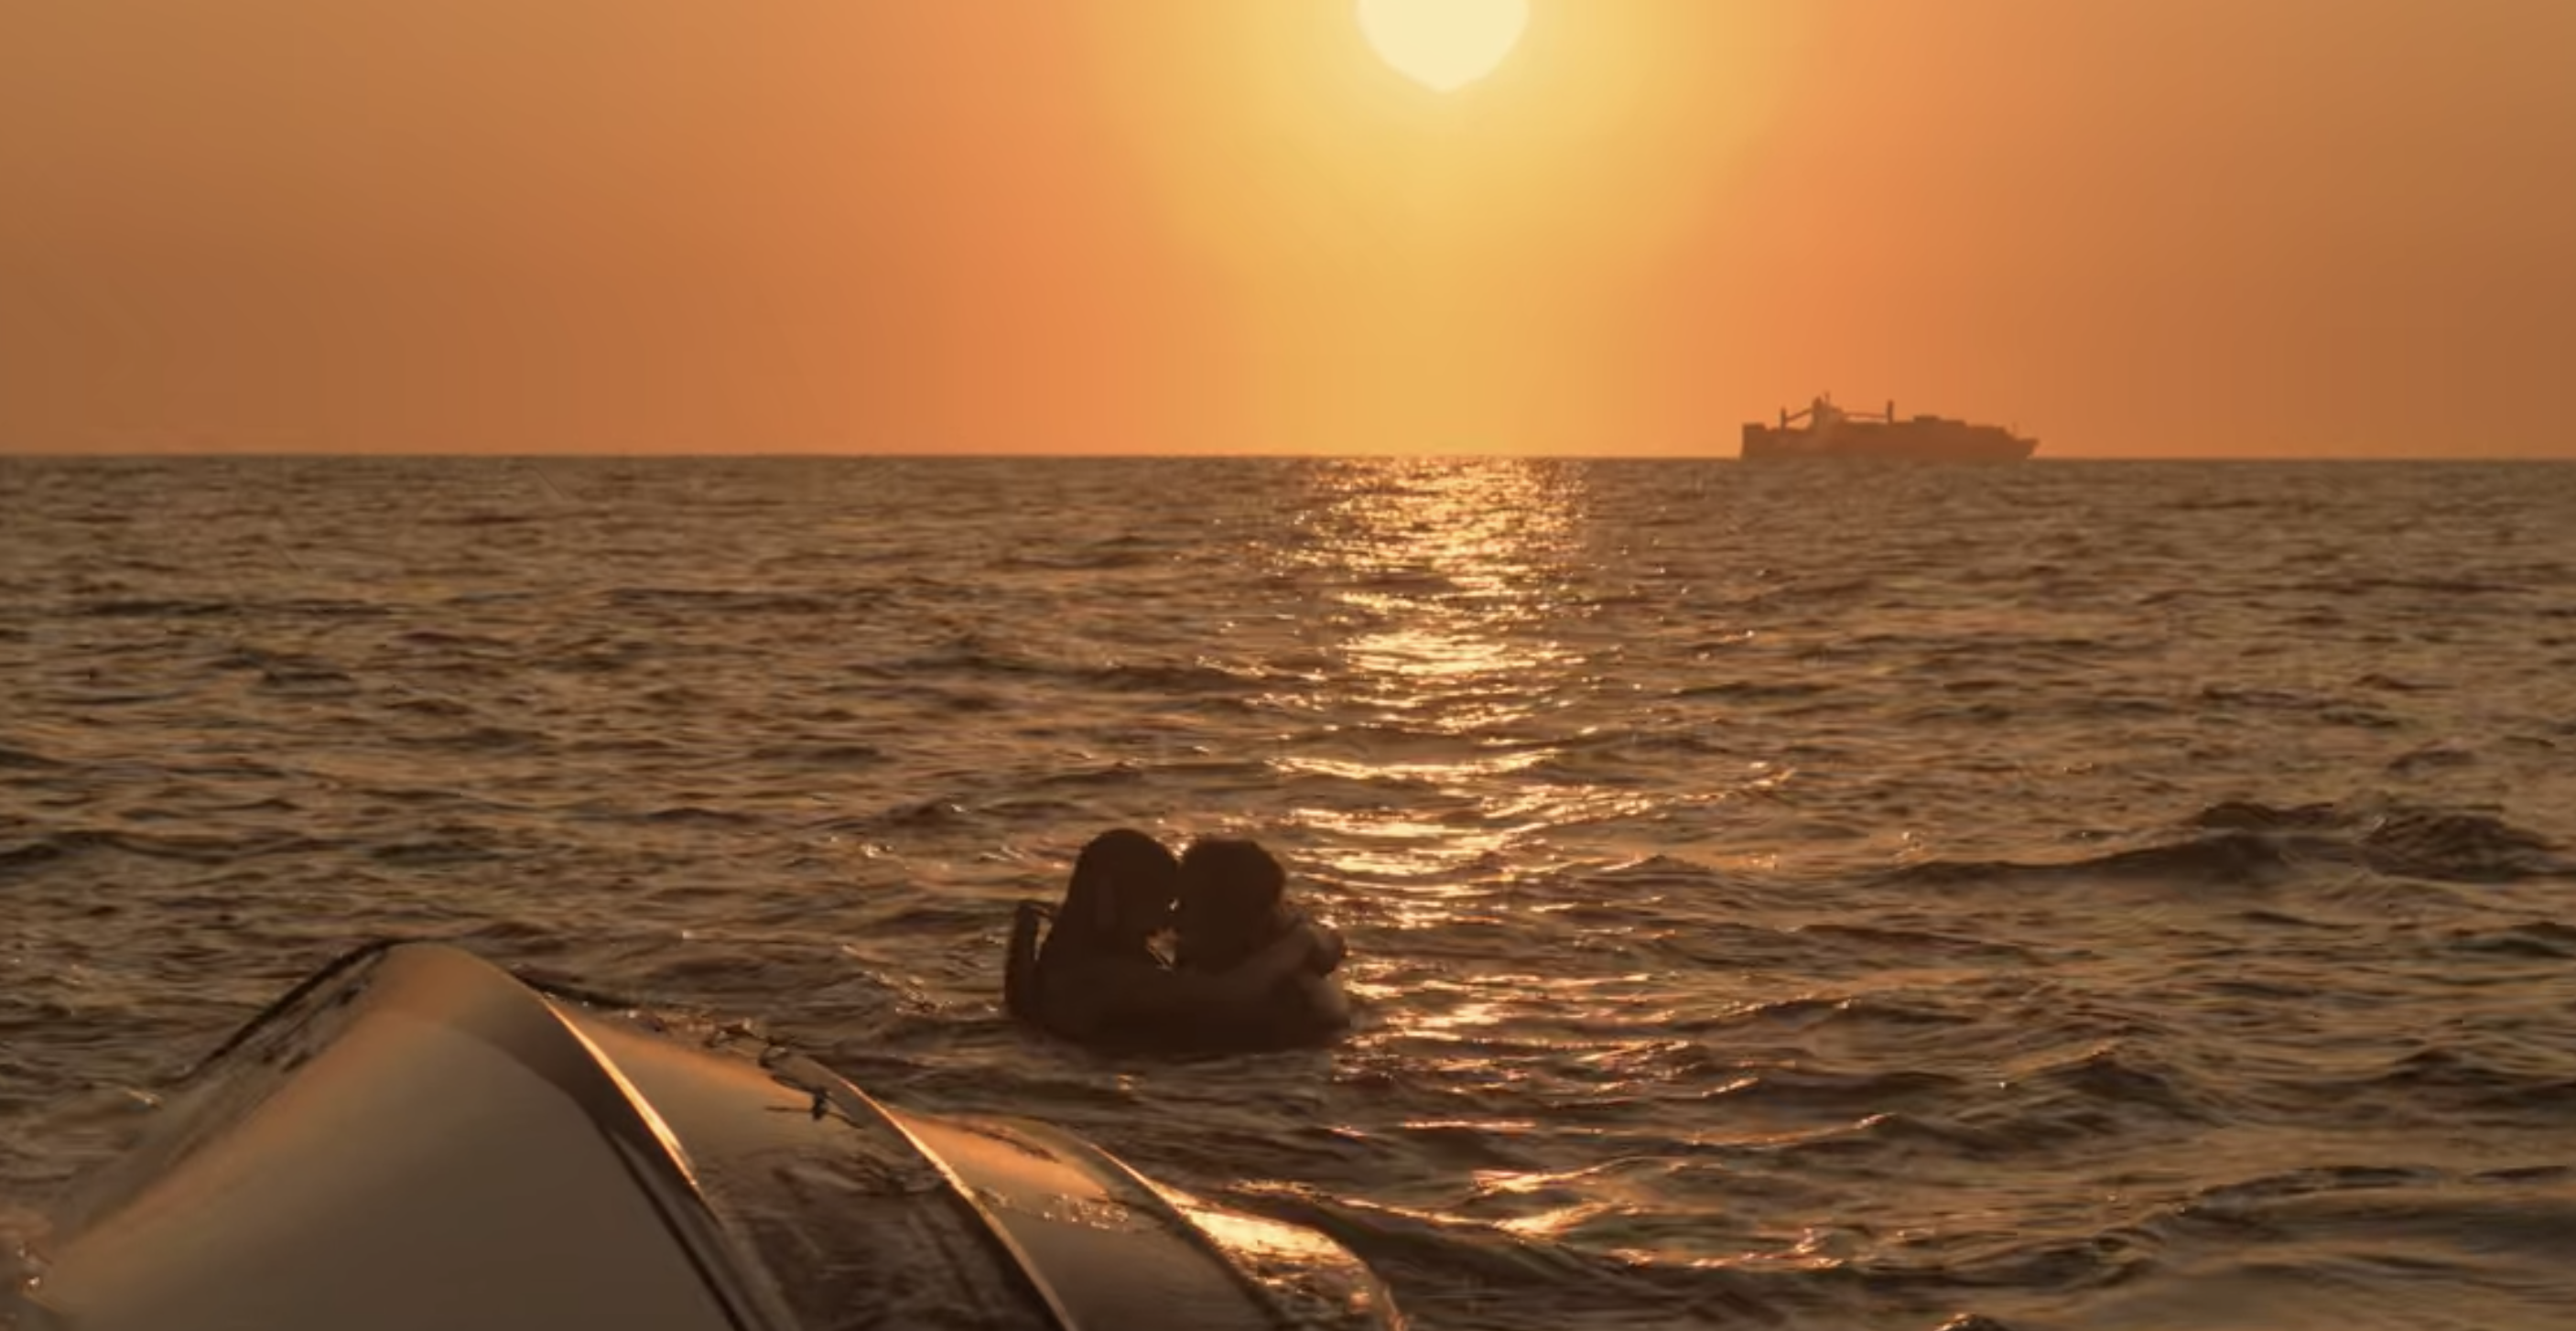 Sarah and John B. hugging in the ocean right before getting rescued